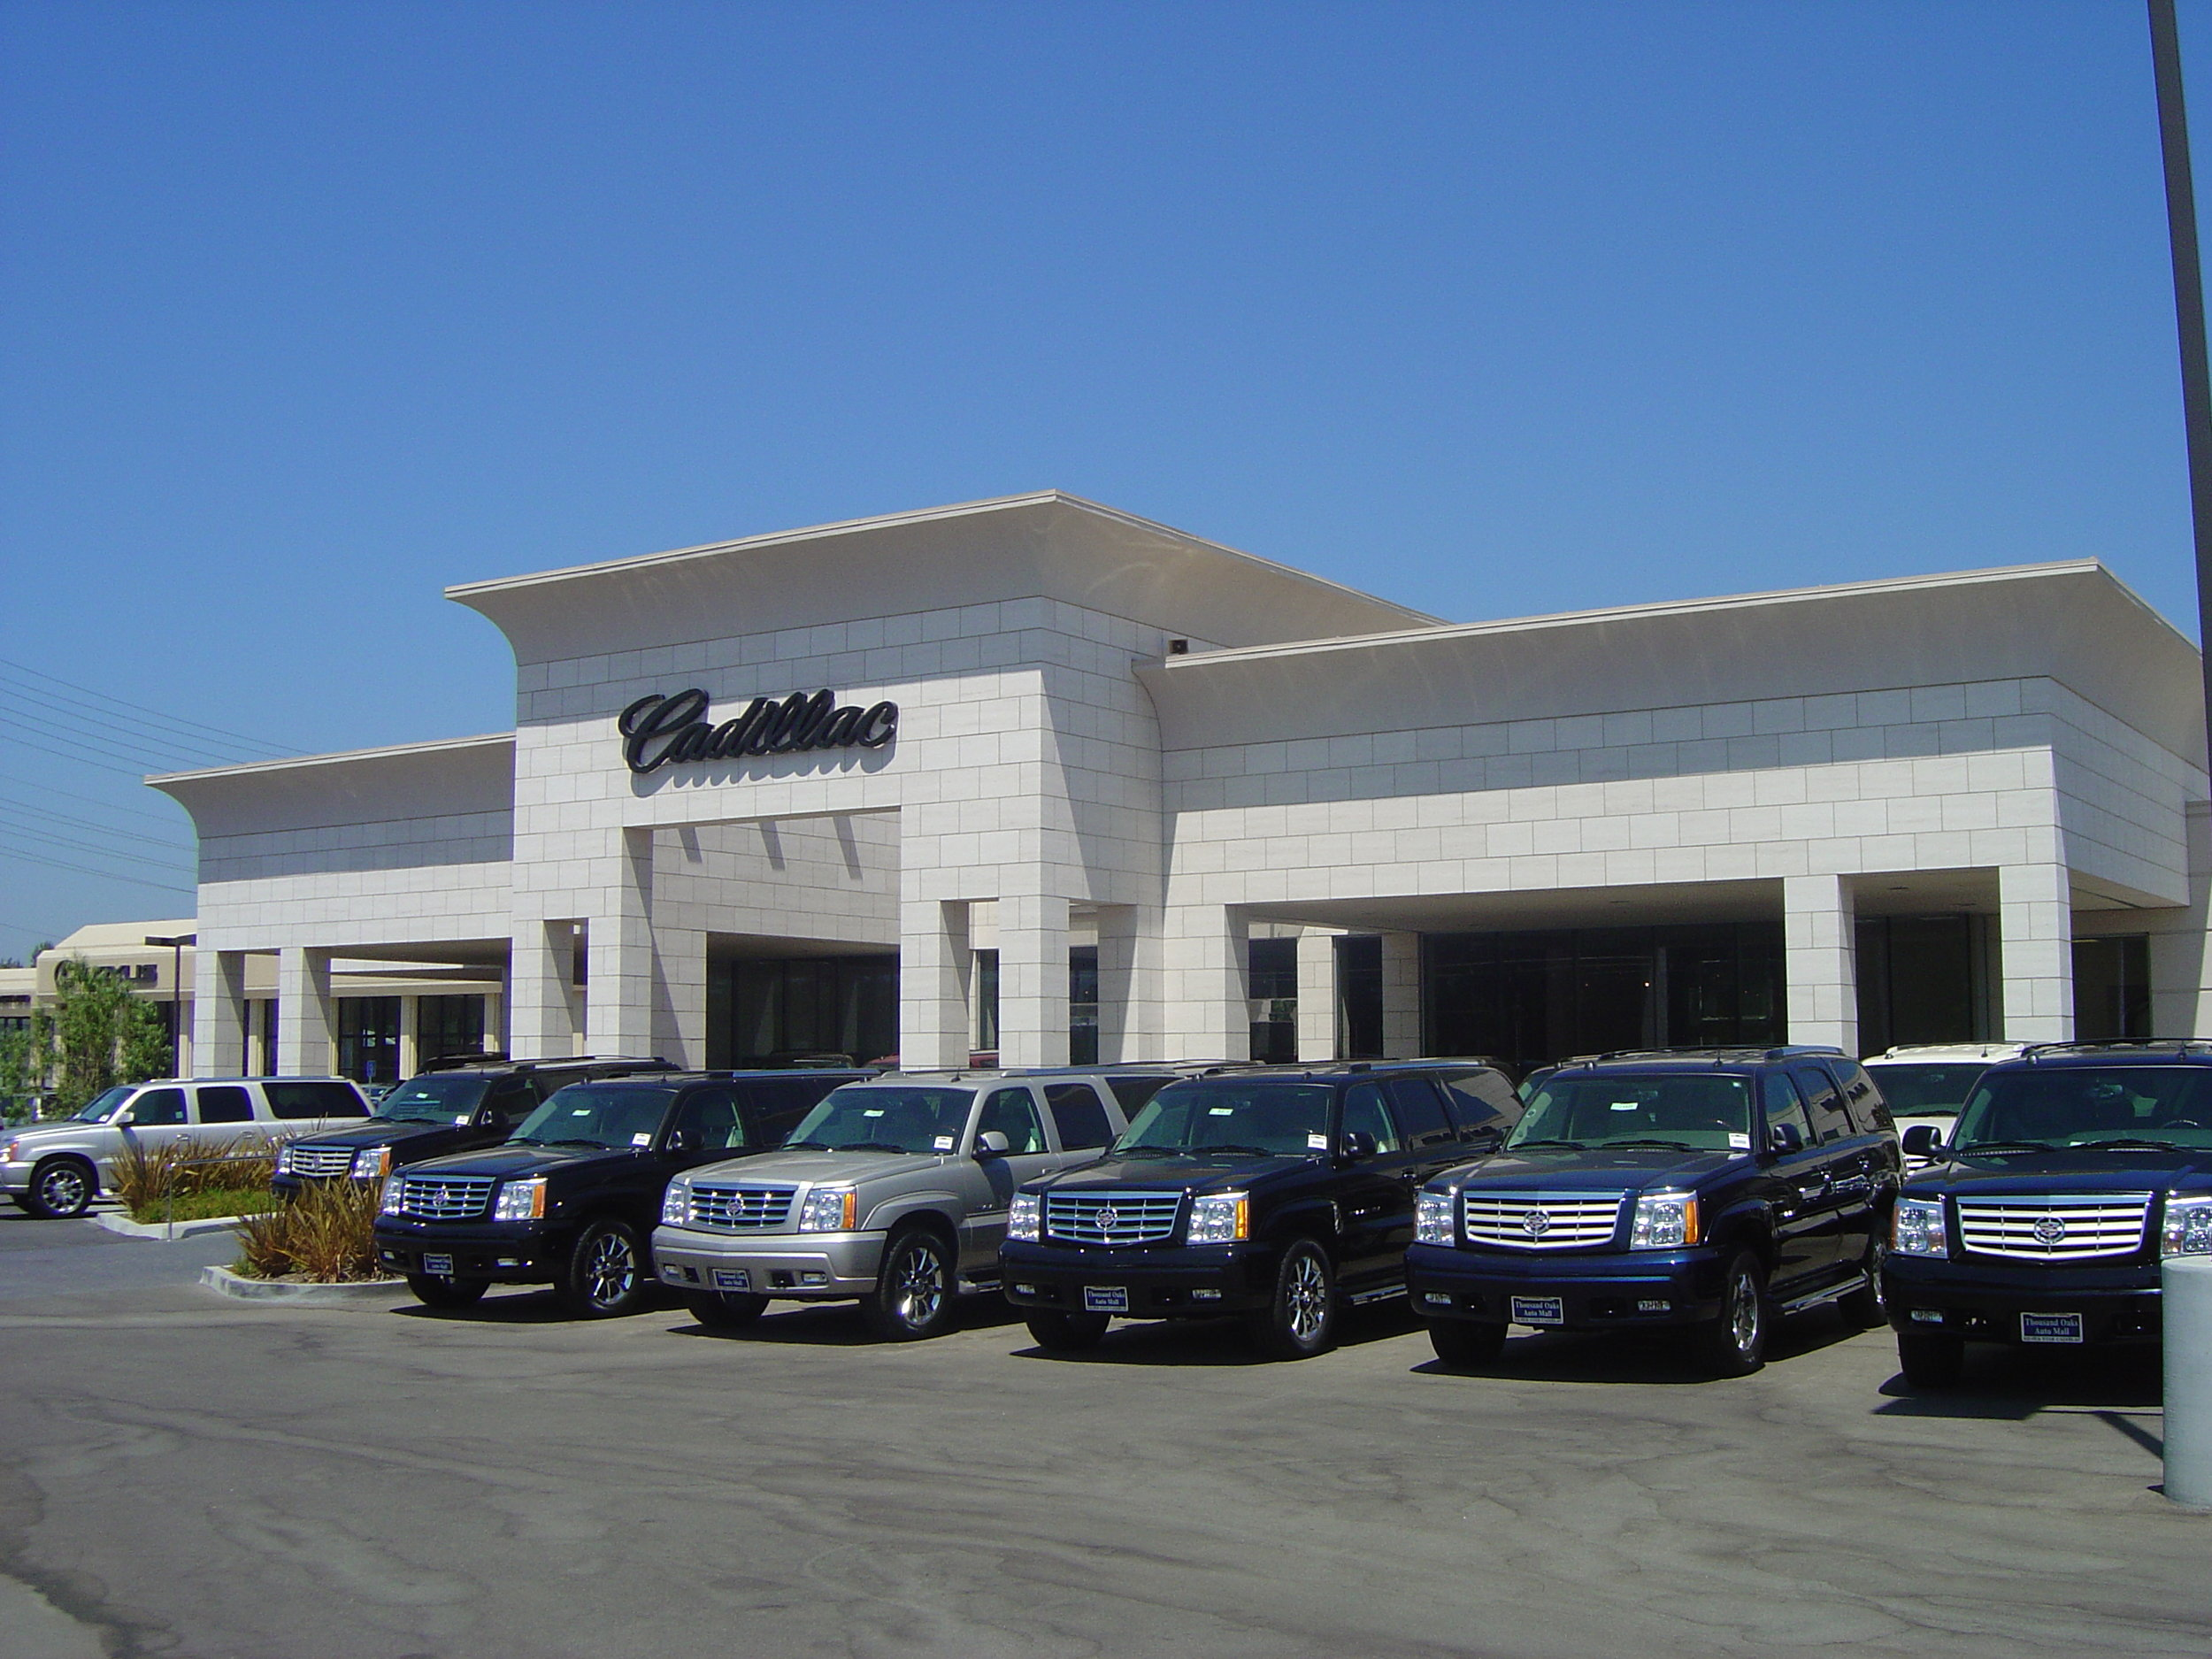 Cadillac Saab Dealership.JPG